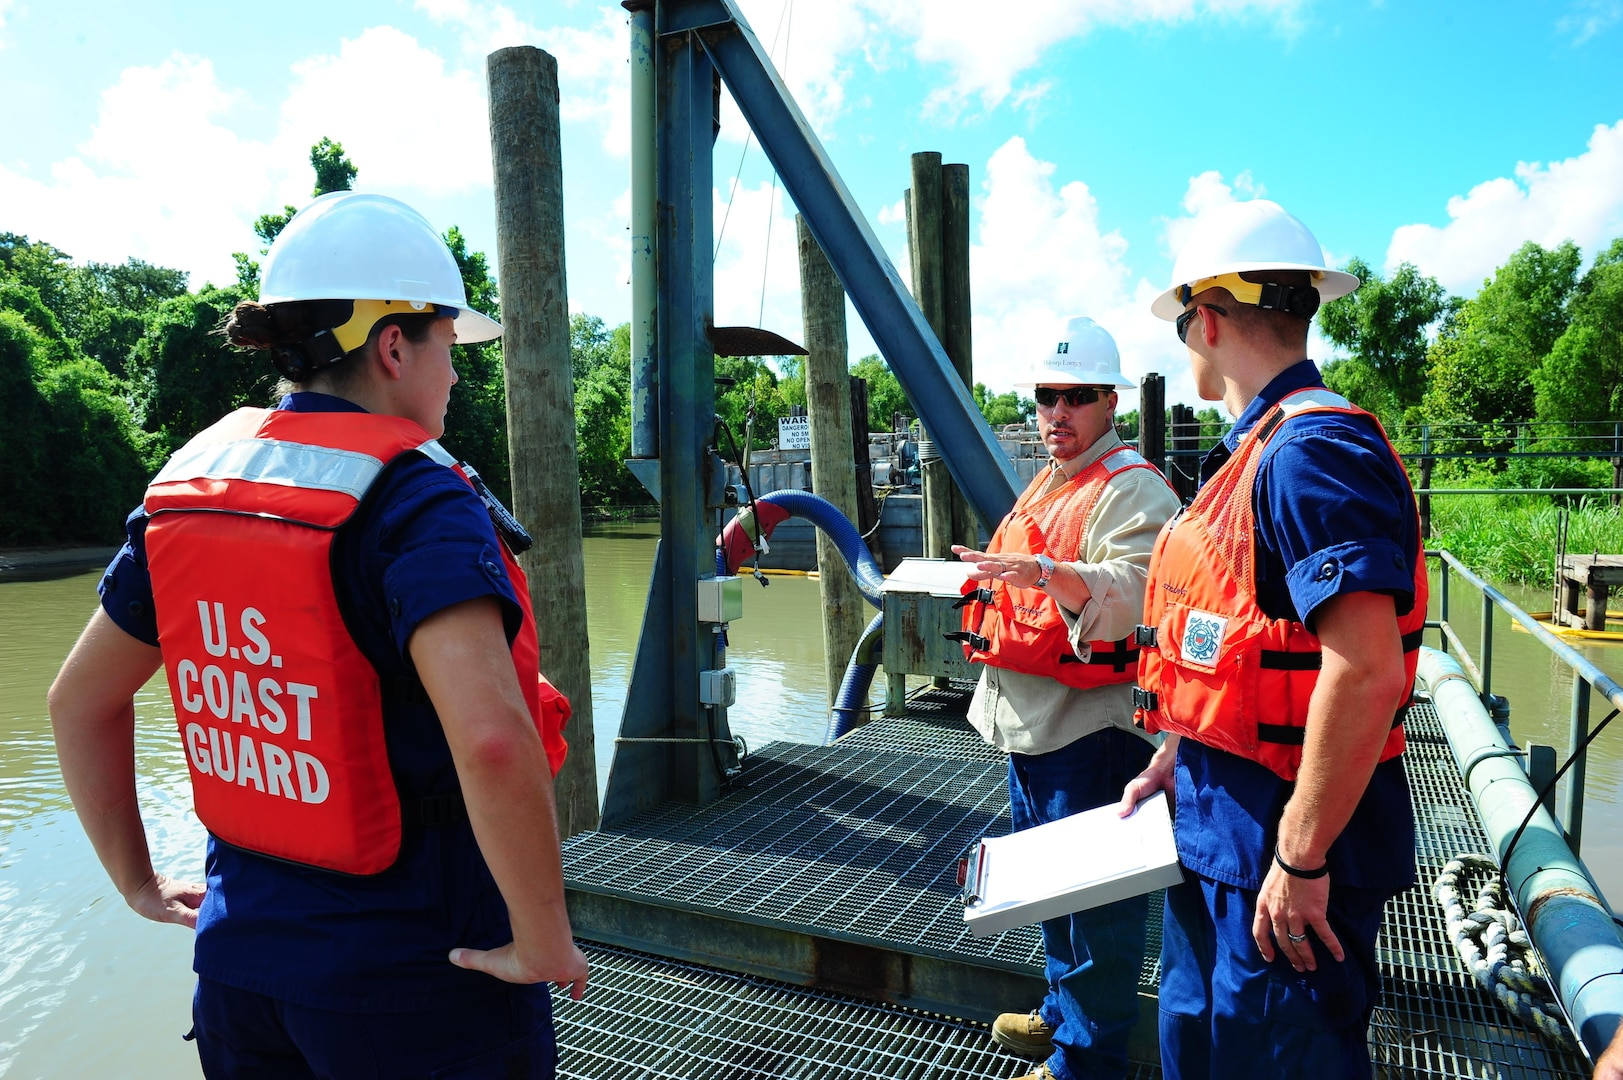 Coast Guard petty officers communicate an environmental health and safety coordinator during a facility inspection. Coast Guard facility inspectors inspect the hoses that transfer oil in order to prevent environmental pollution. (U.S. Coast Guard photo by Petty Officer 3rd Class Carlos Vega)